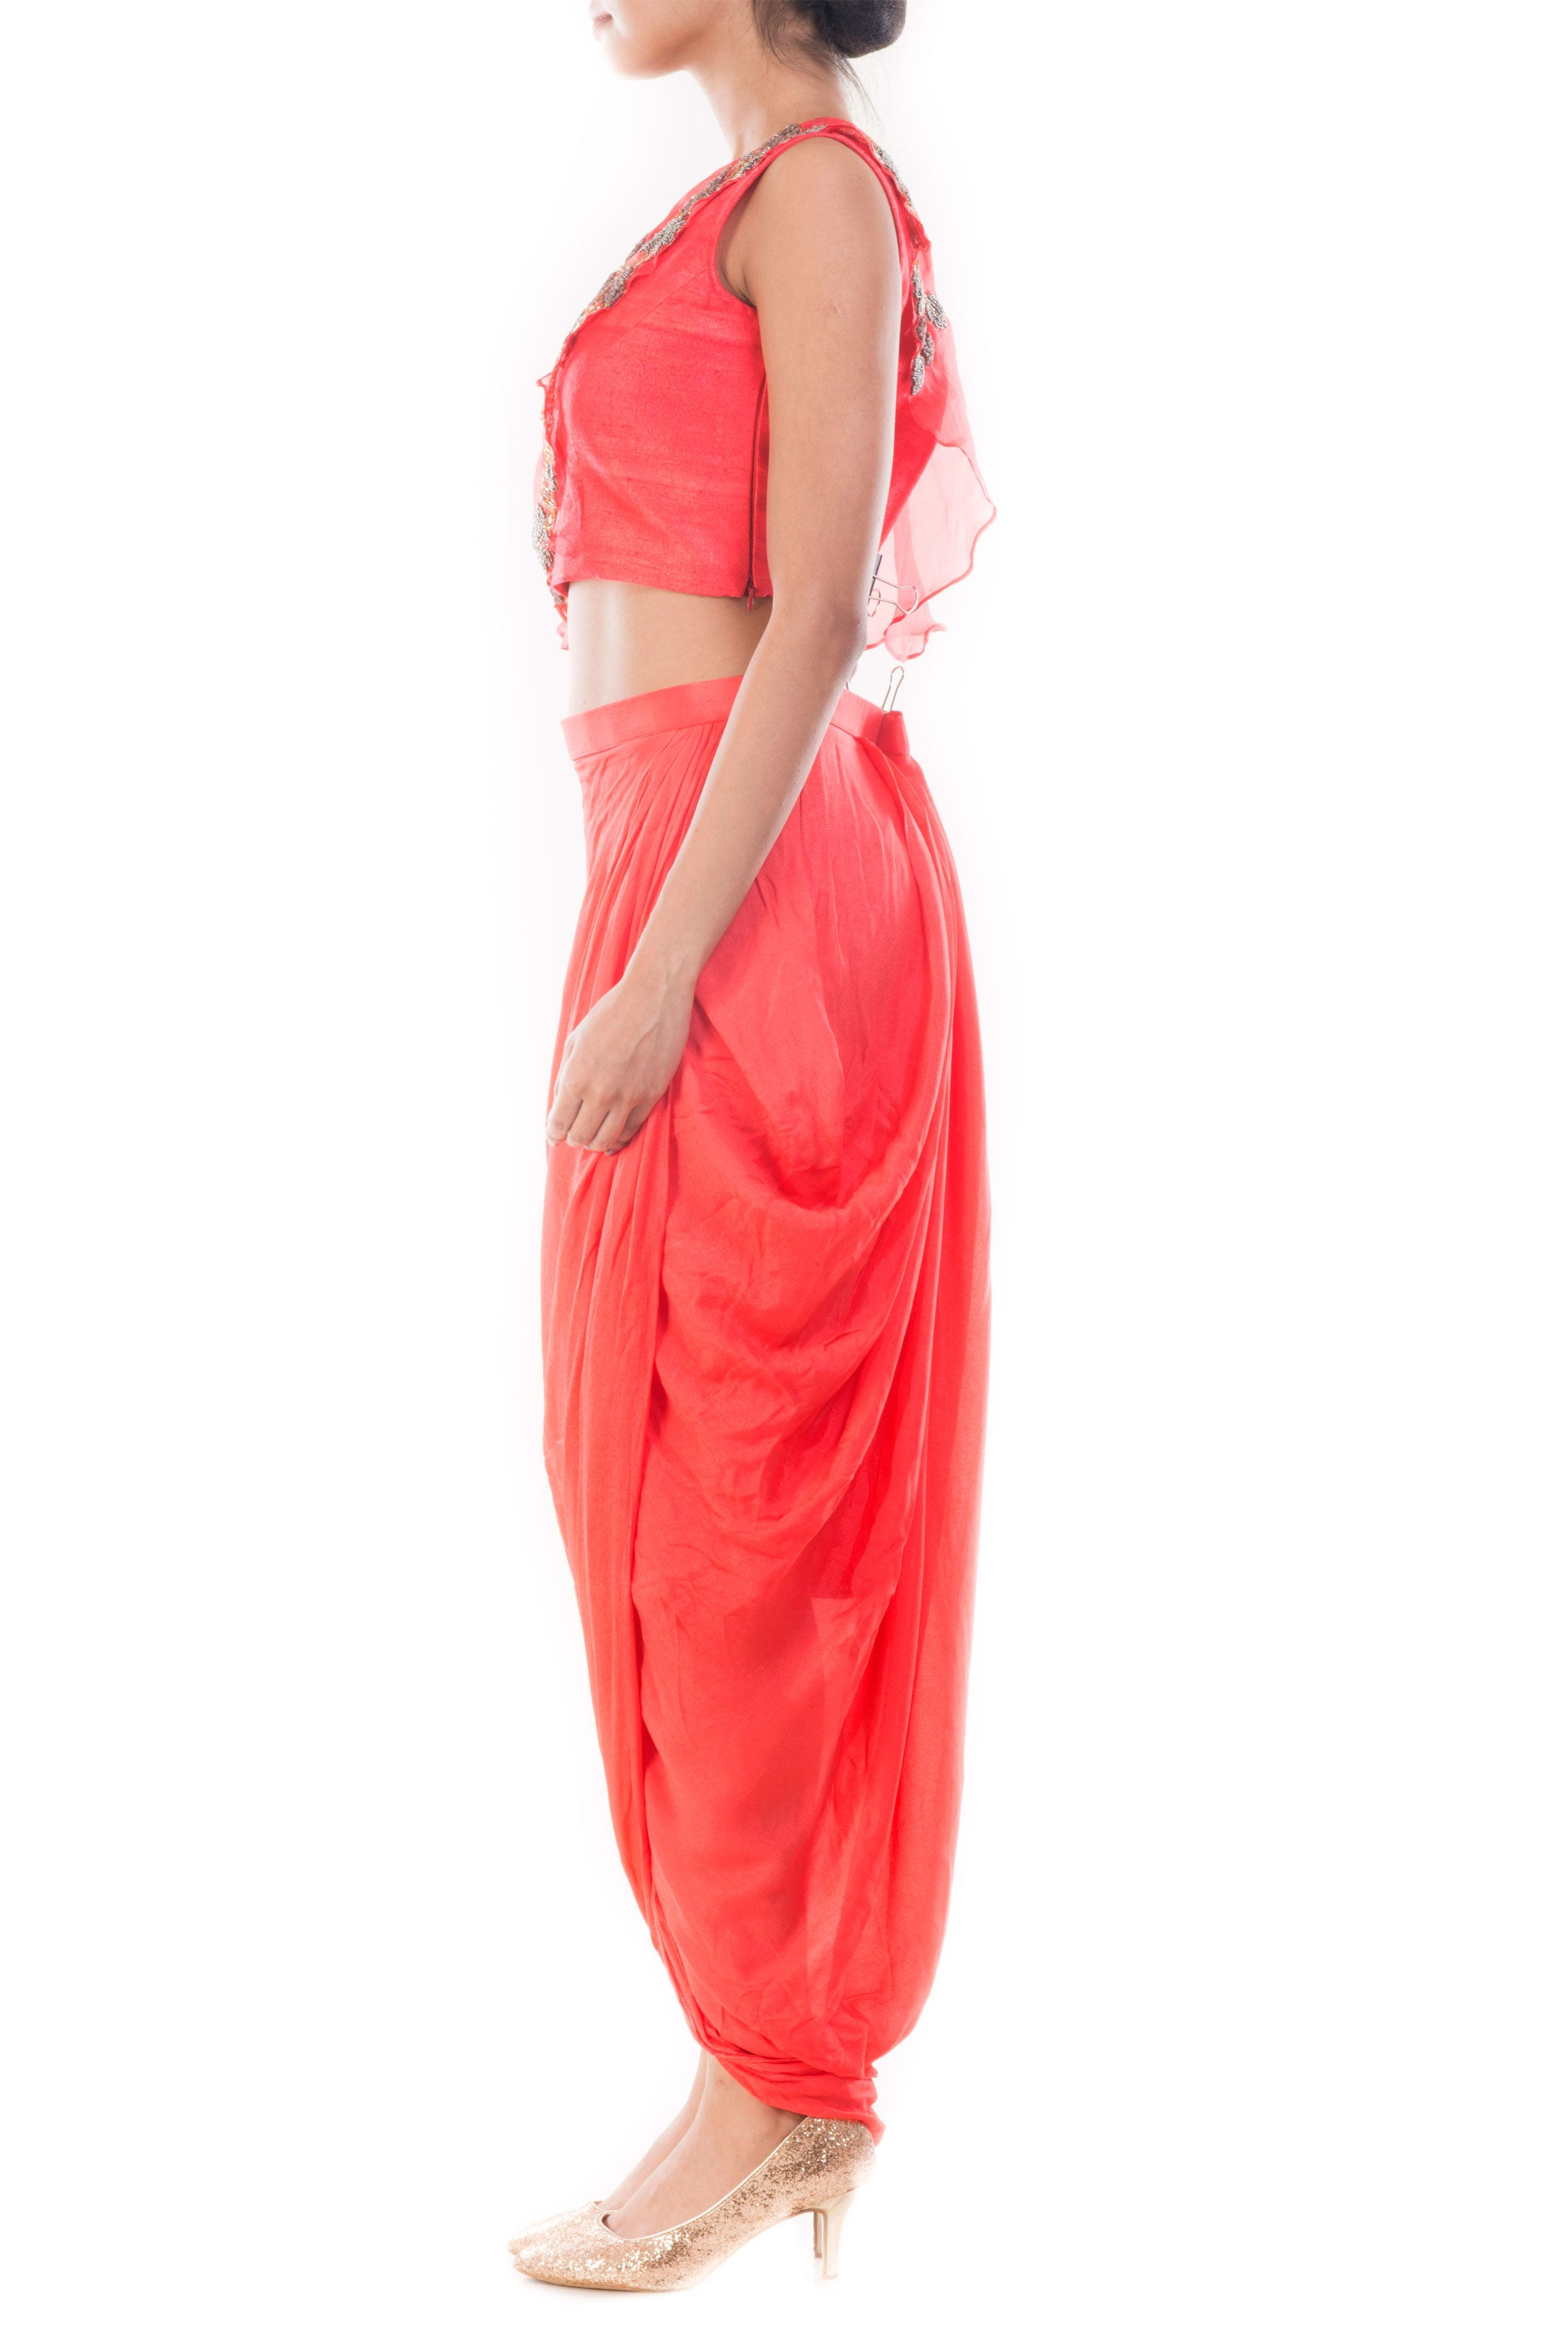 Rose Peach Crop Top & Draped Skirt Side